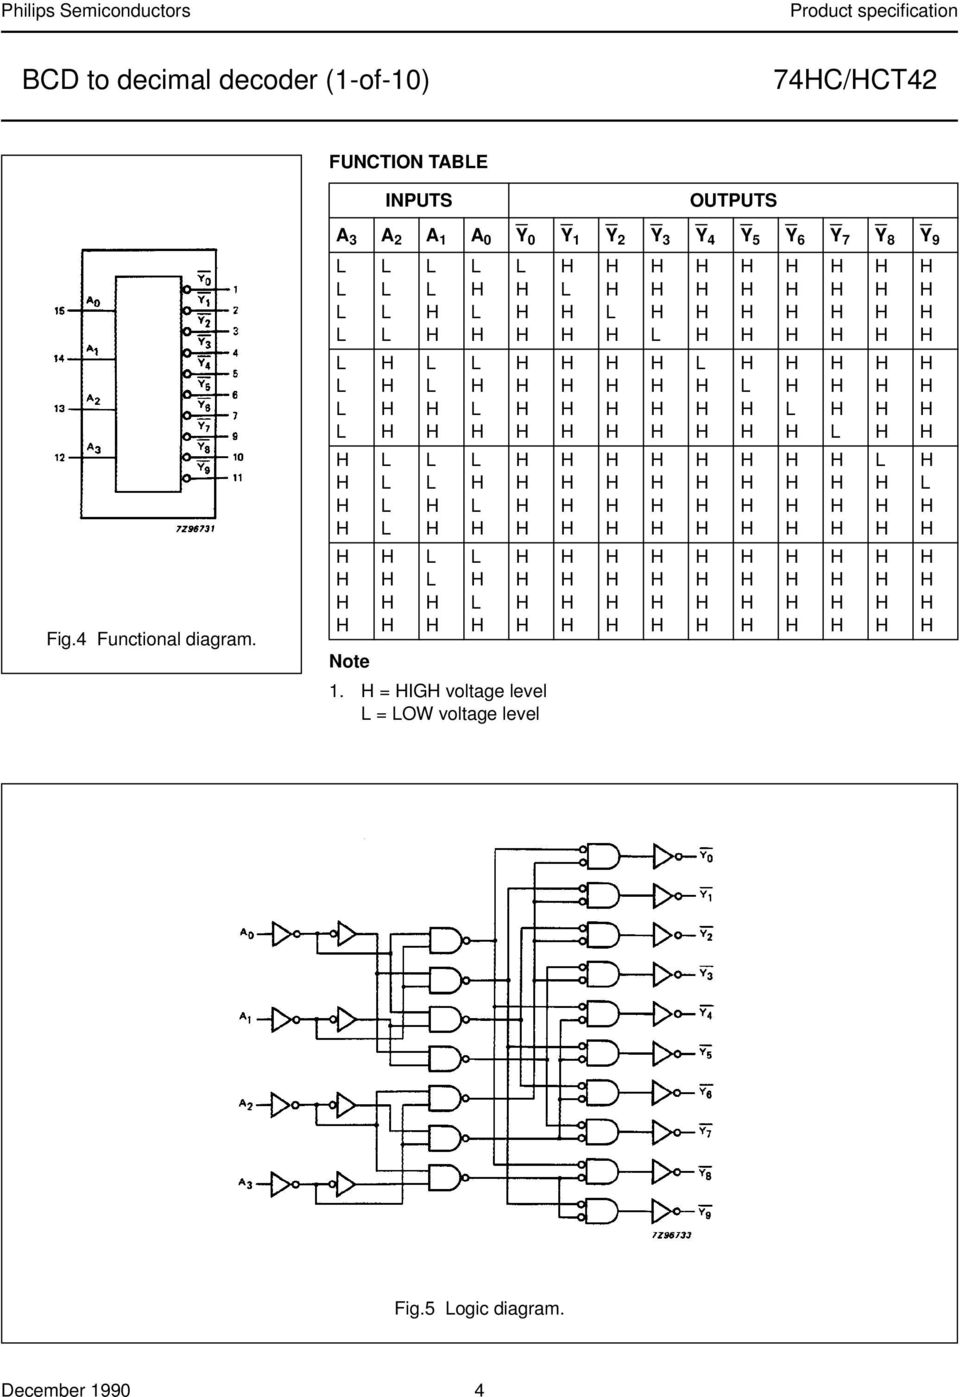 Integrated Circuits For A Complete Data Sheet Please Also Download 1 Of 8 Decoder Logic Diagram Ig Voltage Level Ow Inputs Outputs